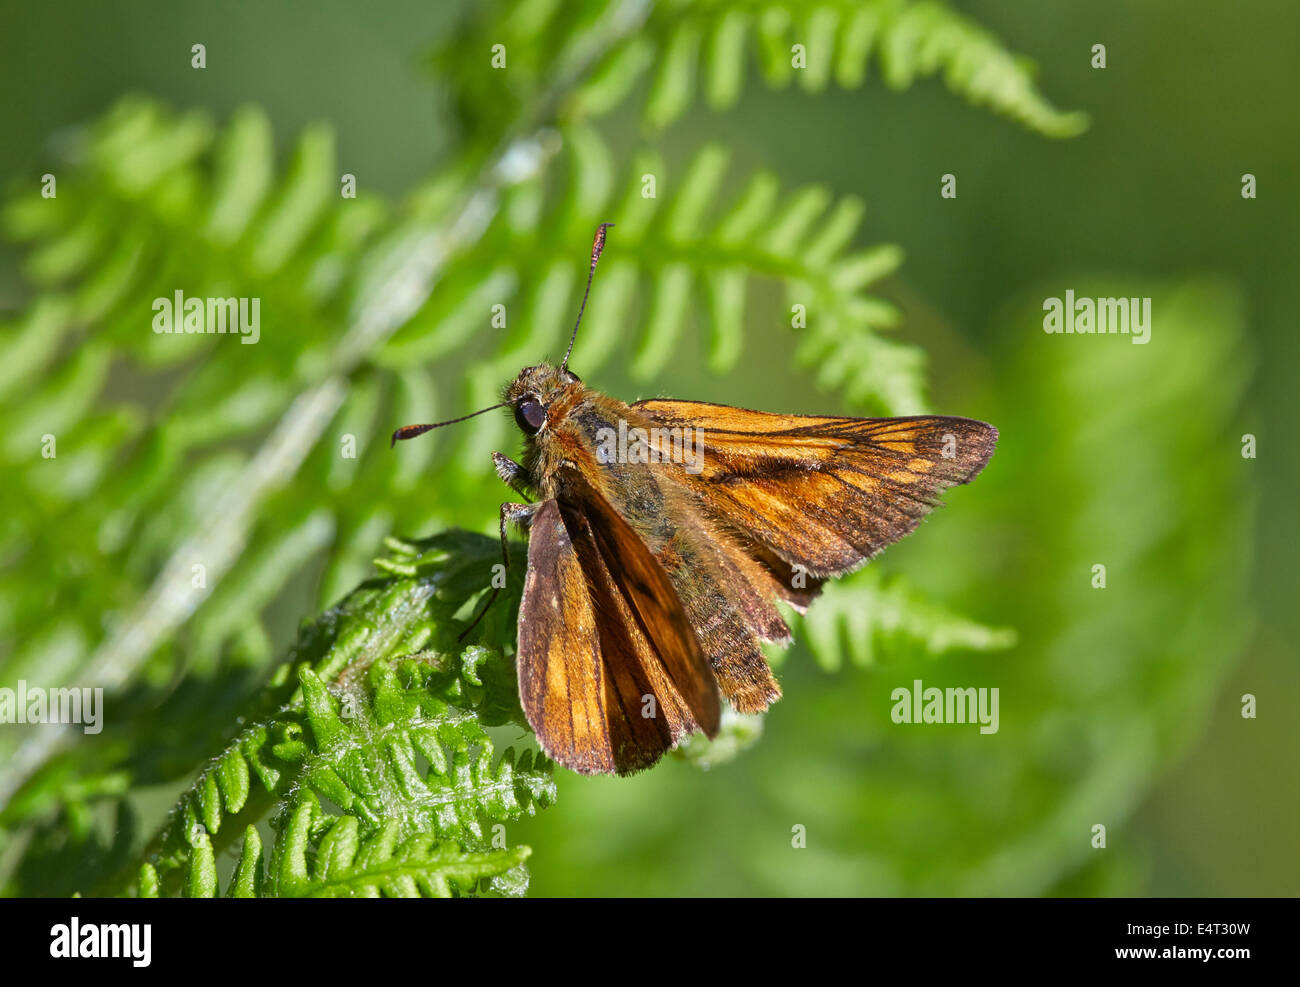 Large Skipper butterfly resting on bracken. Bookham Common, Surrey, England. - Stock Image